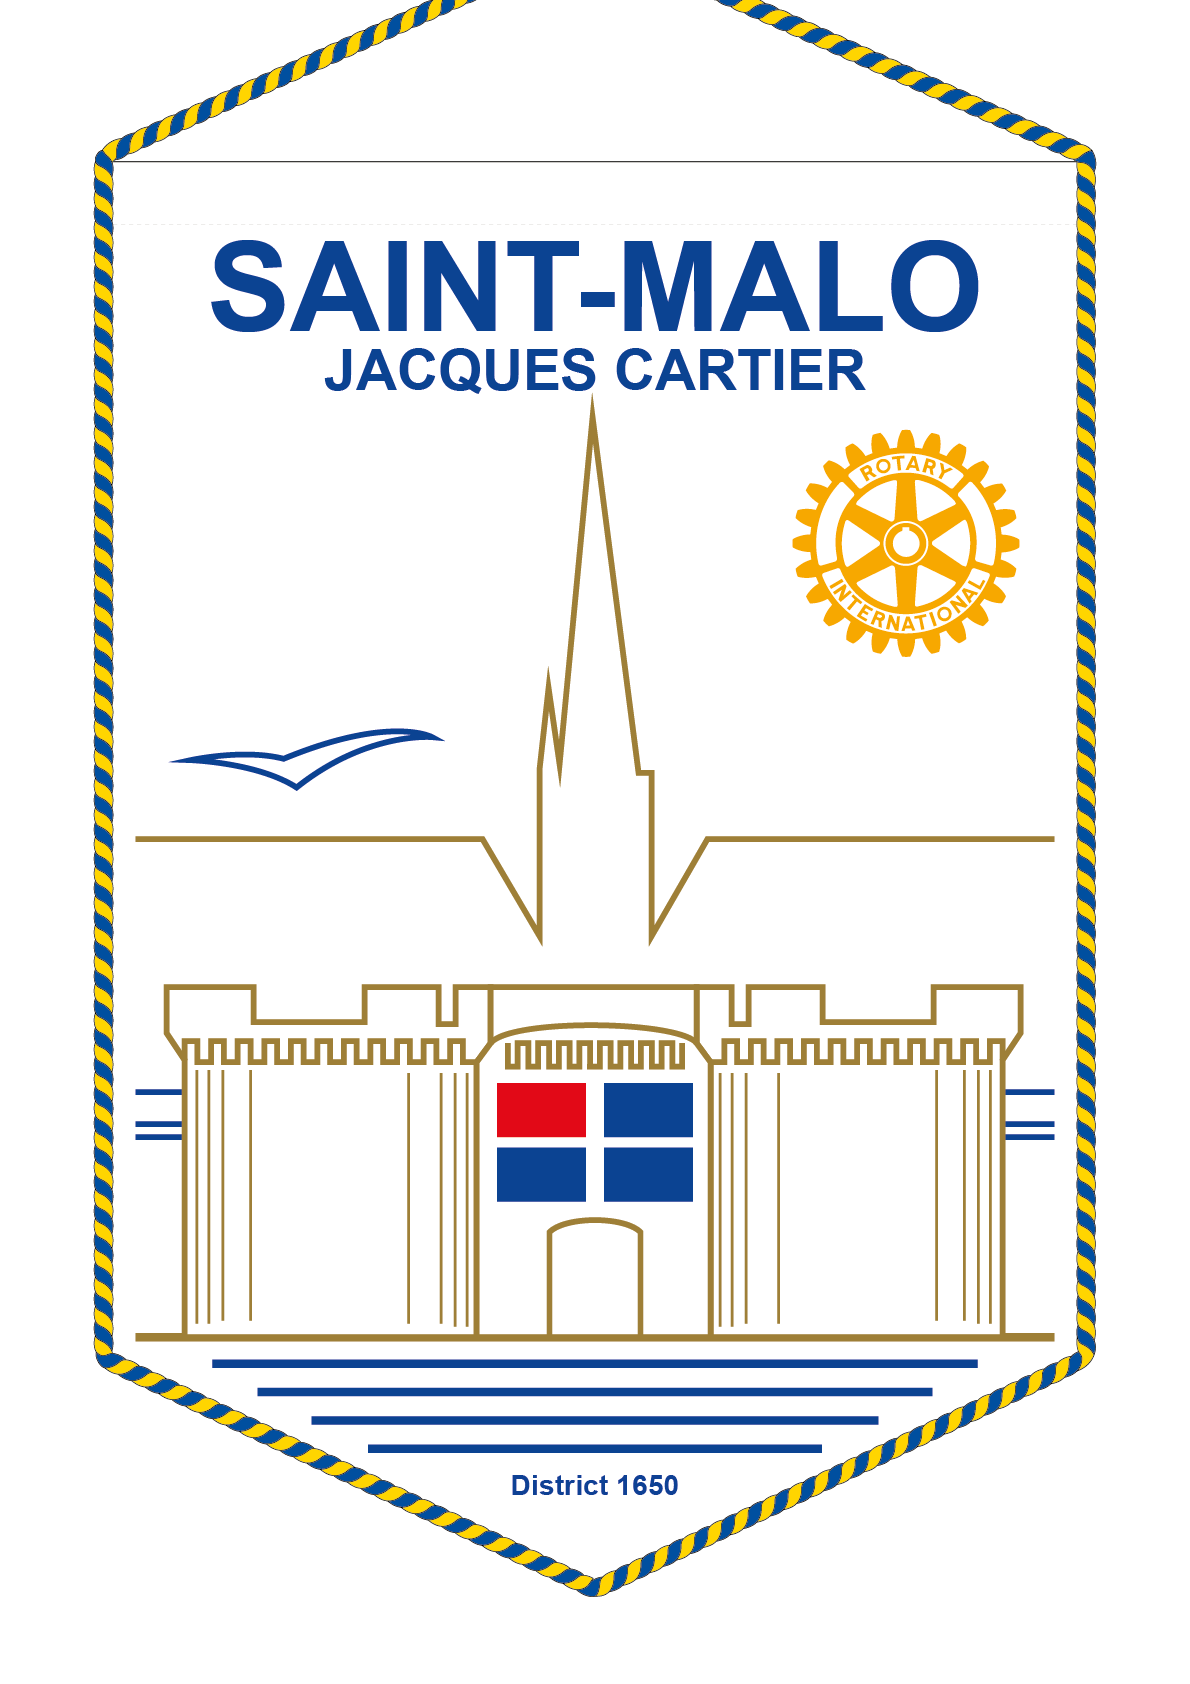 FANION ROTARY CLUB SAINT MALO JACQUES CARTIER